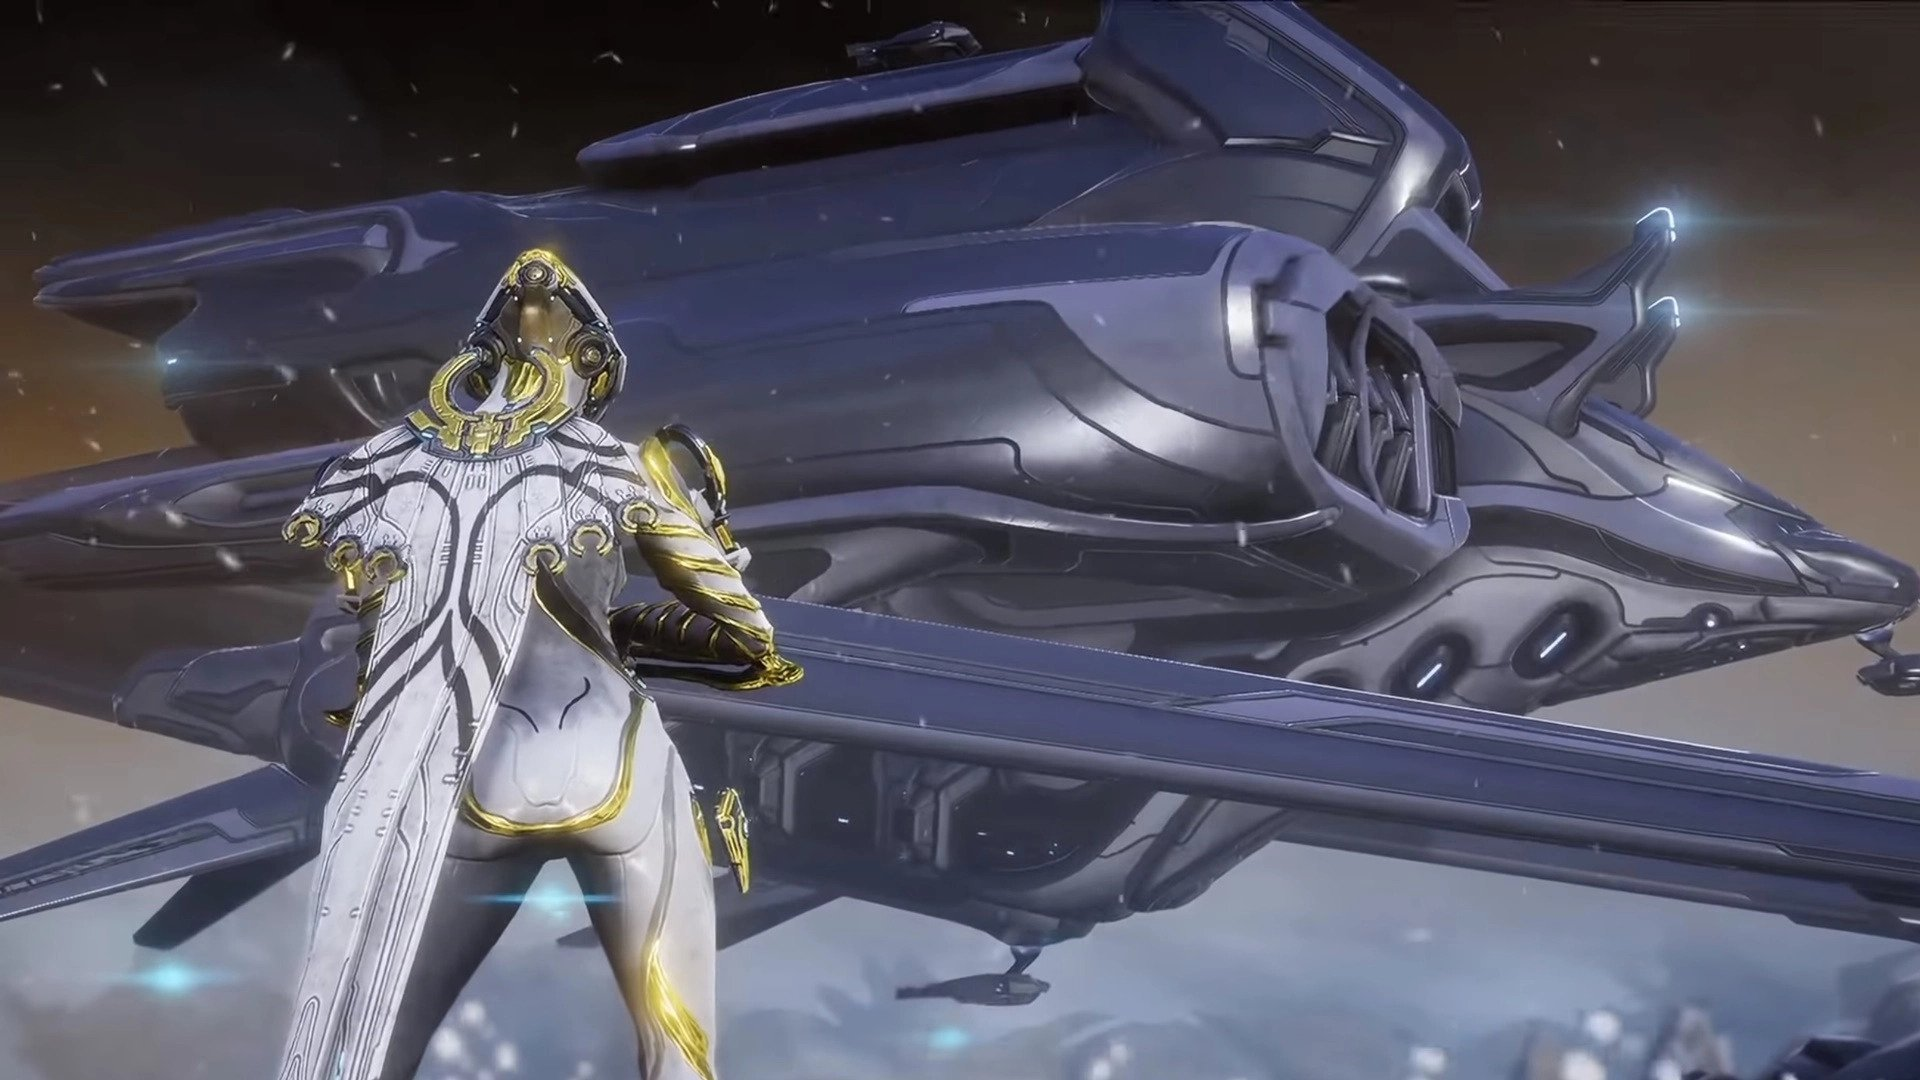 Warframe ship-to-ship combat teased with Railjack at TennoCon 2018